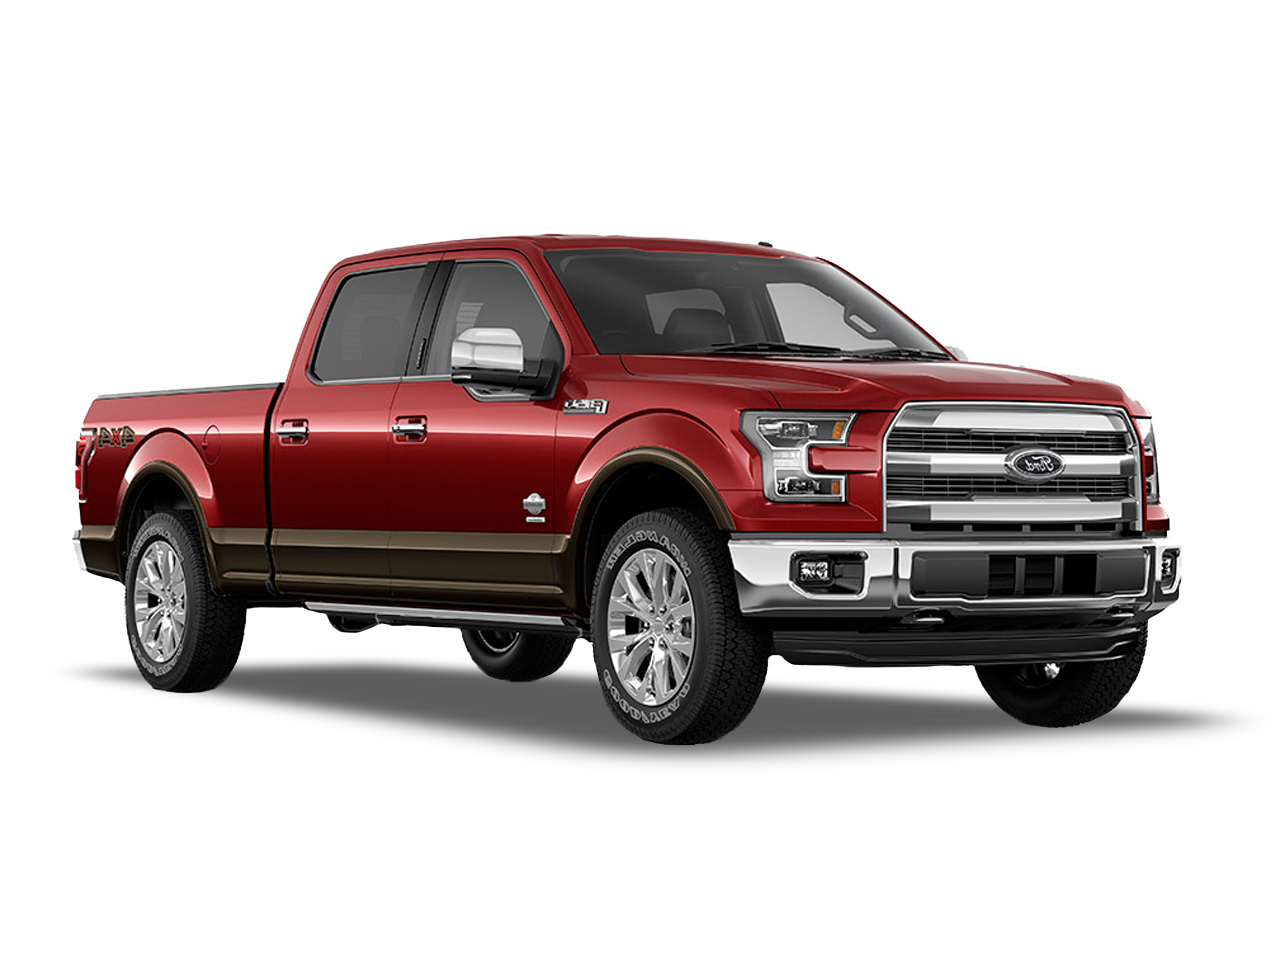 New Ford F-150 at Quirk Ford